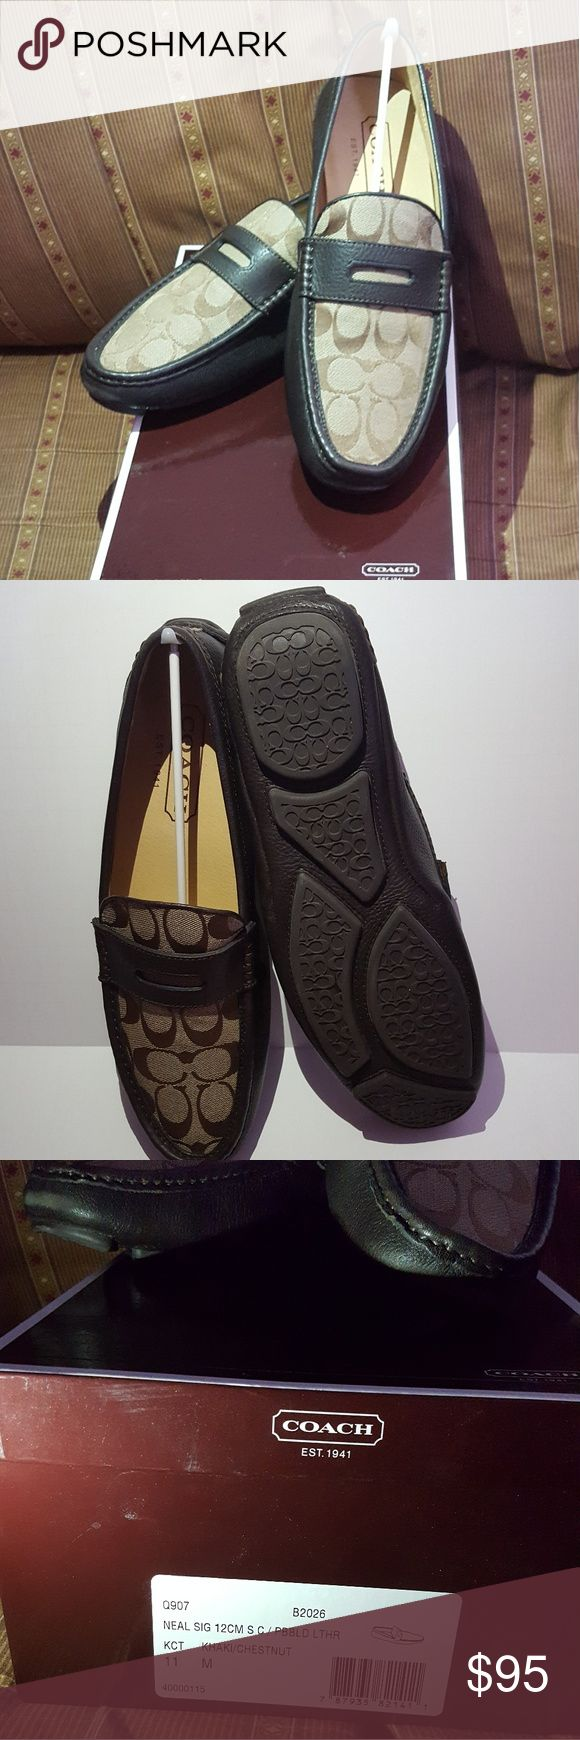 New COACH Mens Neal Brown/Tan Slip On Loafers These COACH Mens Neal Brown/Tan Slip On Loafers Shoes. Are brand new in mint condition never been worn. I bought for the hubby but he never wore them. They come with the original box which they came in. This will make a perfect Christmas gift for that special guy in your life. They are size 11 🎄🍁 Coach Shoes Loafers & Slip-Ons